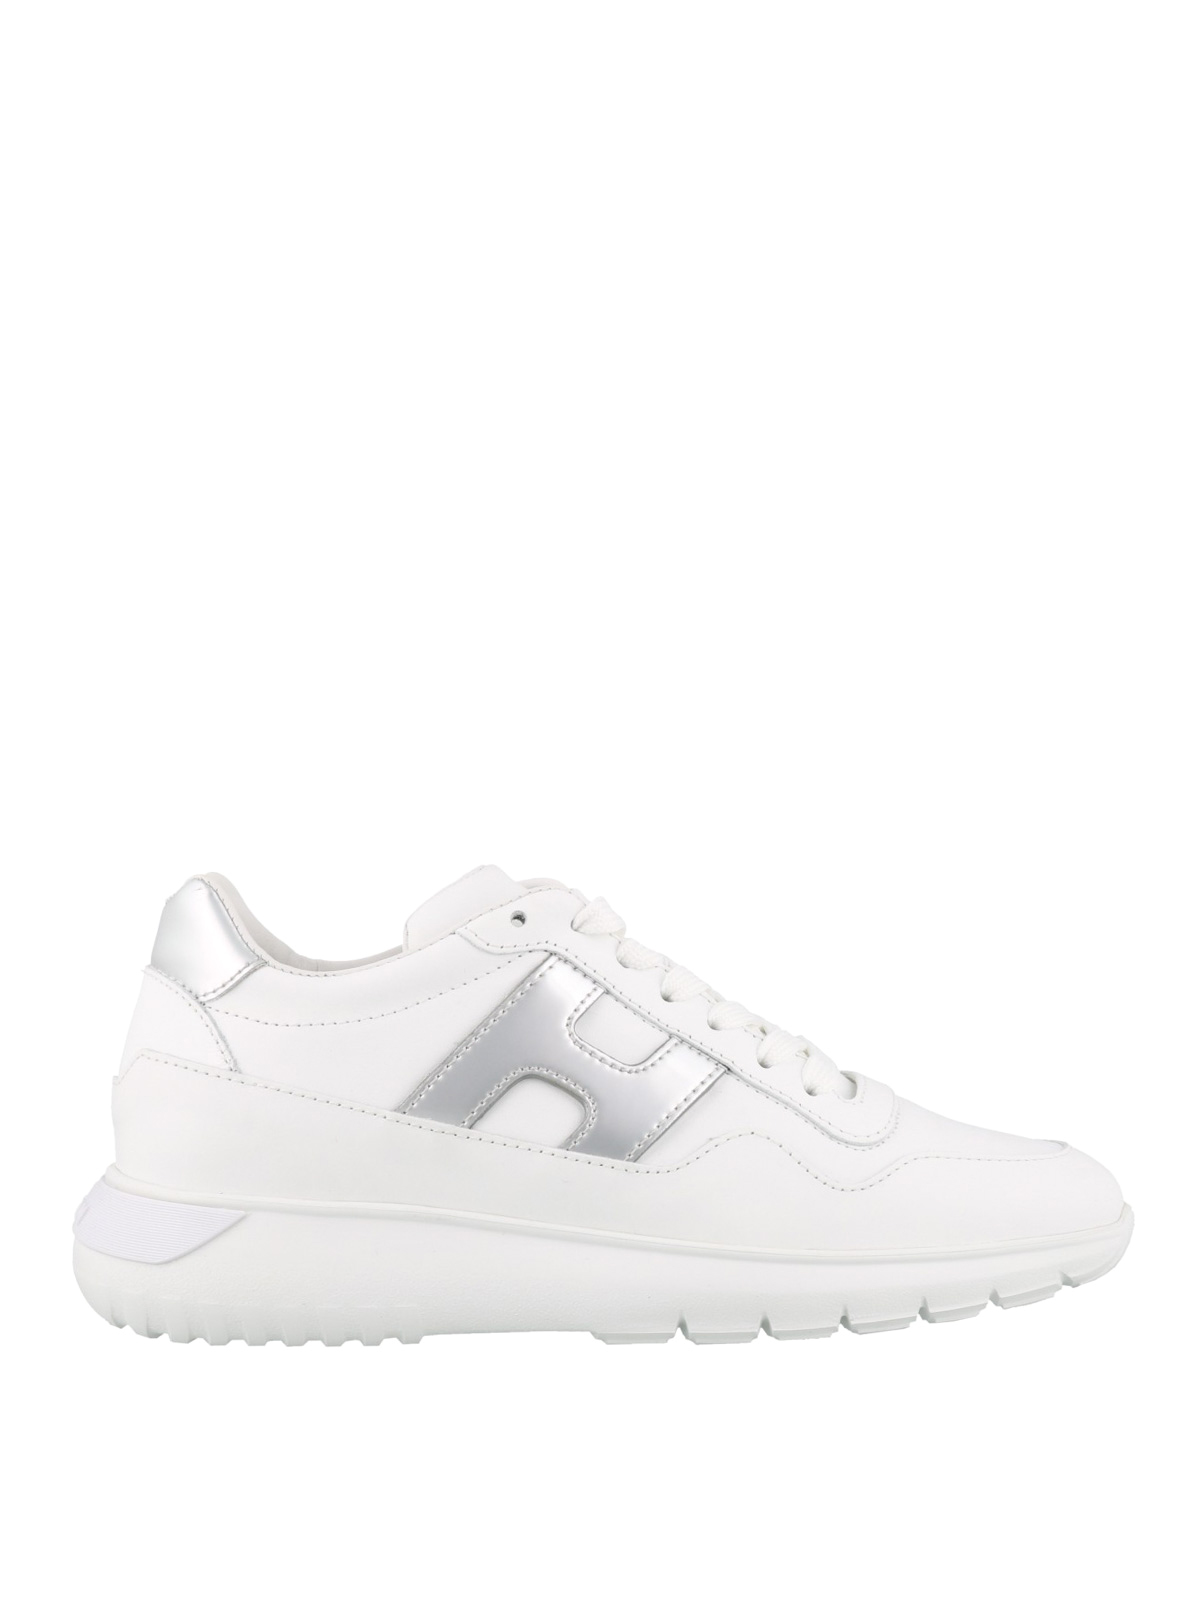 Hogan Interactive Leather Sneakers In White